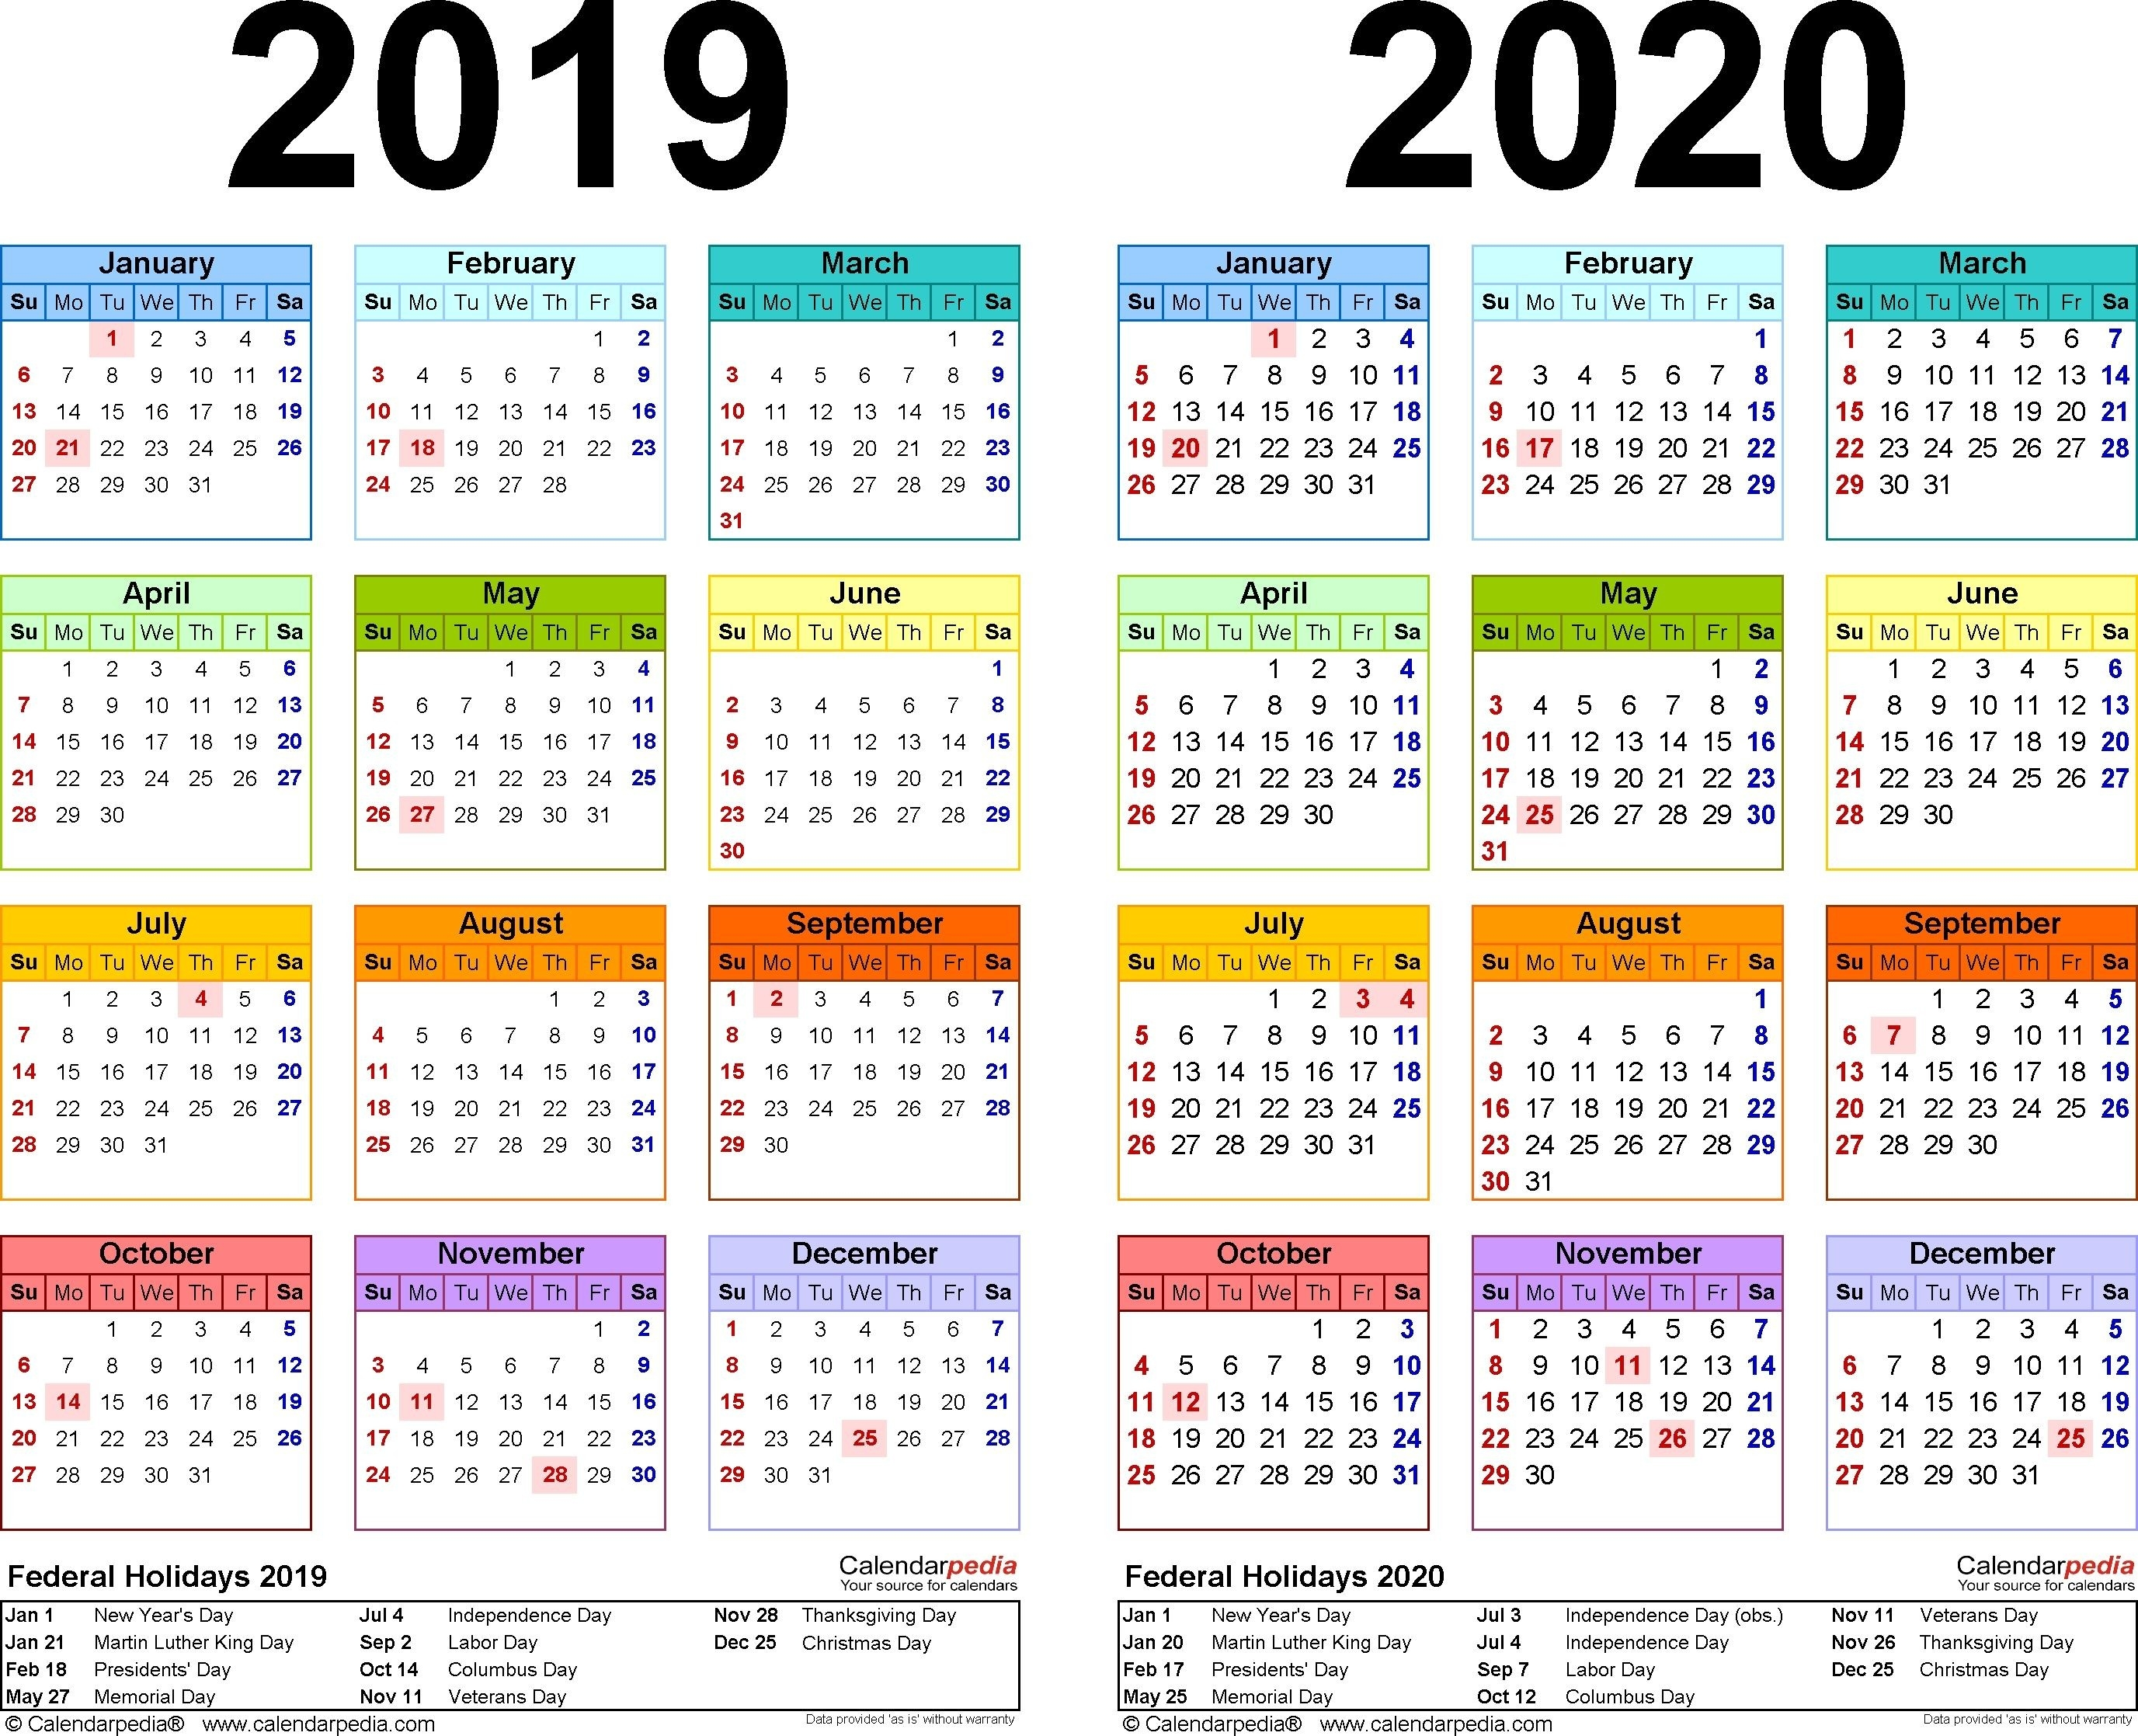 2019-2020 Calendar - Free Printable Two-Year Excel Calendars-Free 2 Page Calendar Templates 2020